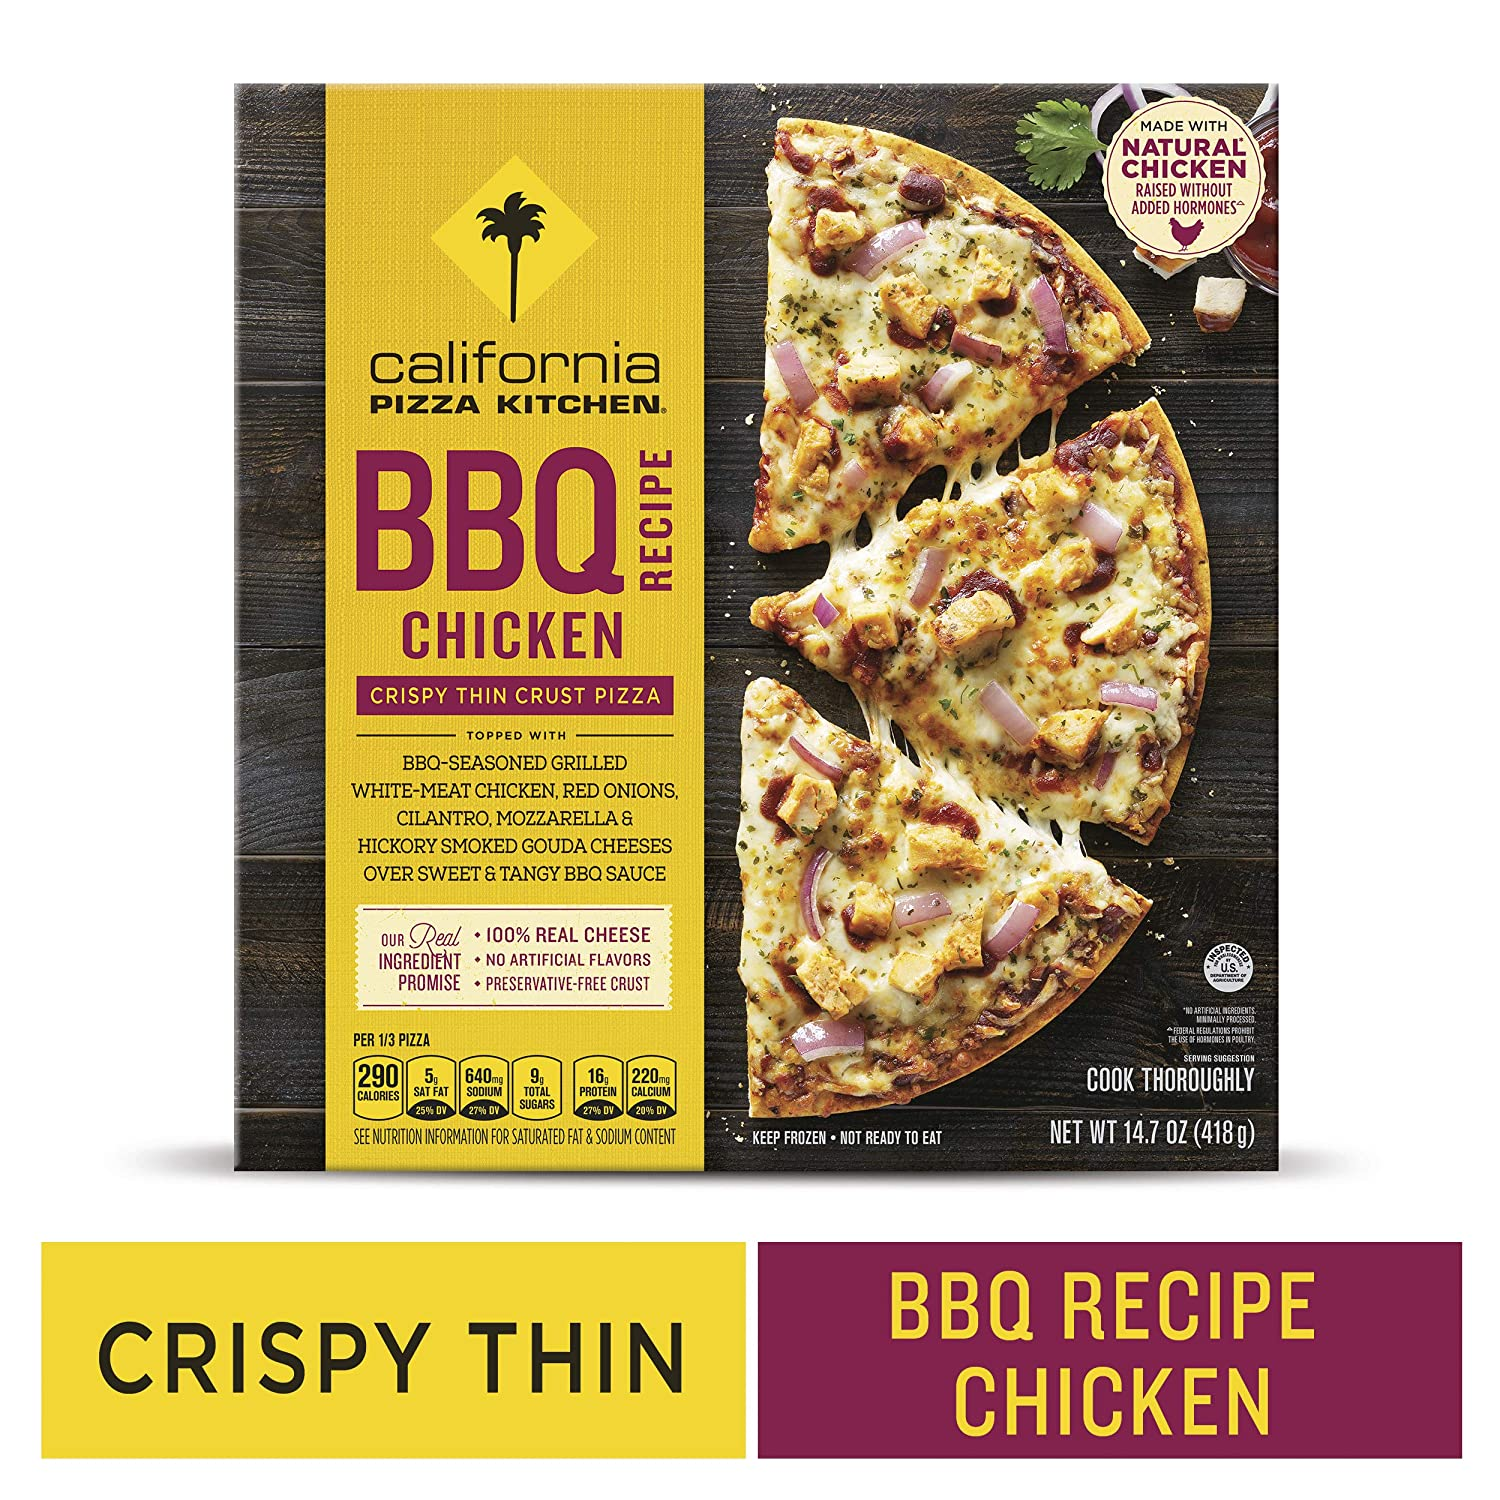 California pizza kitchen crispy thin crust frozen pizza bbq recipe chicken 14 7 oz amazon com grocery gourmet food